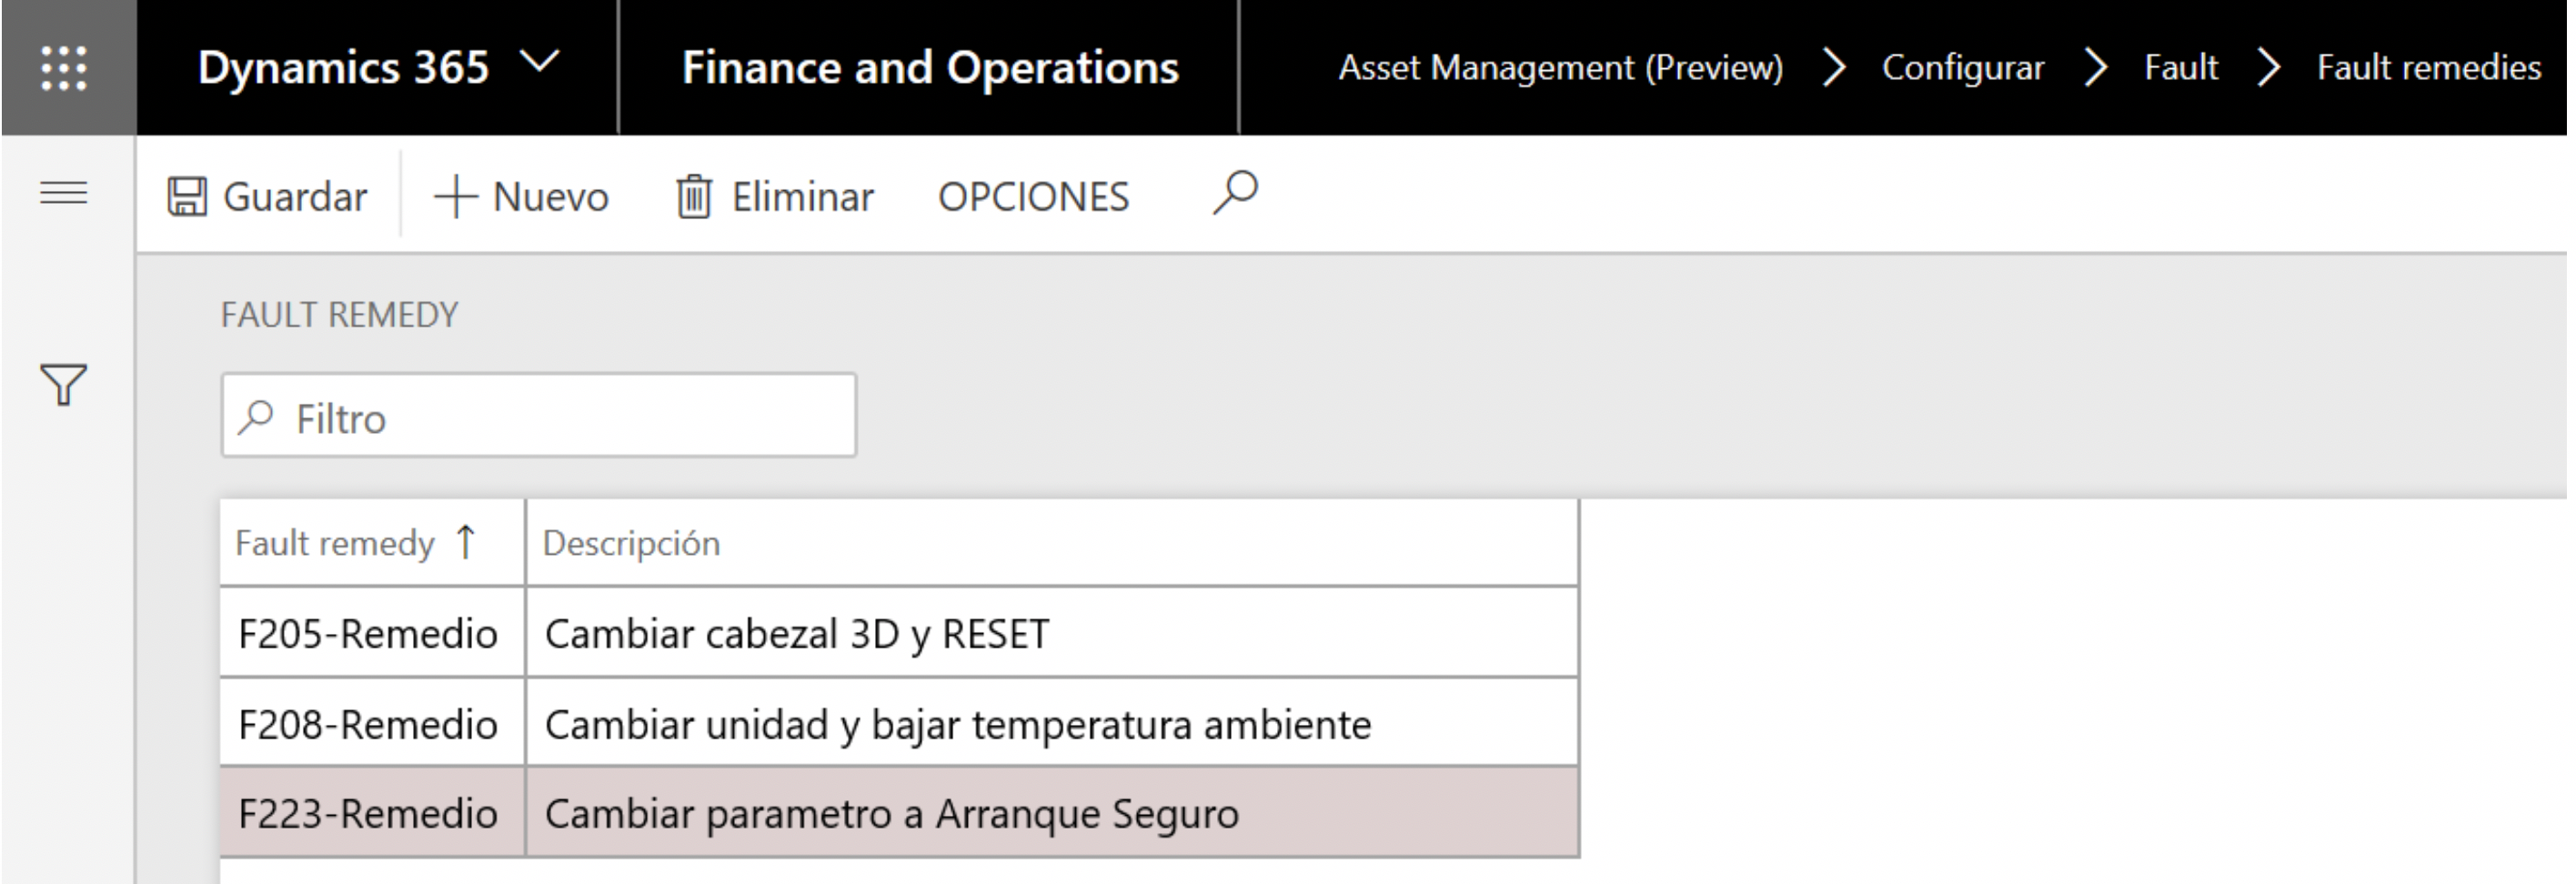 ERD - Dynamics365 Finance Operations - Gestión Activos ERP - 2.15